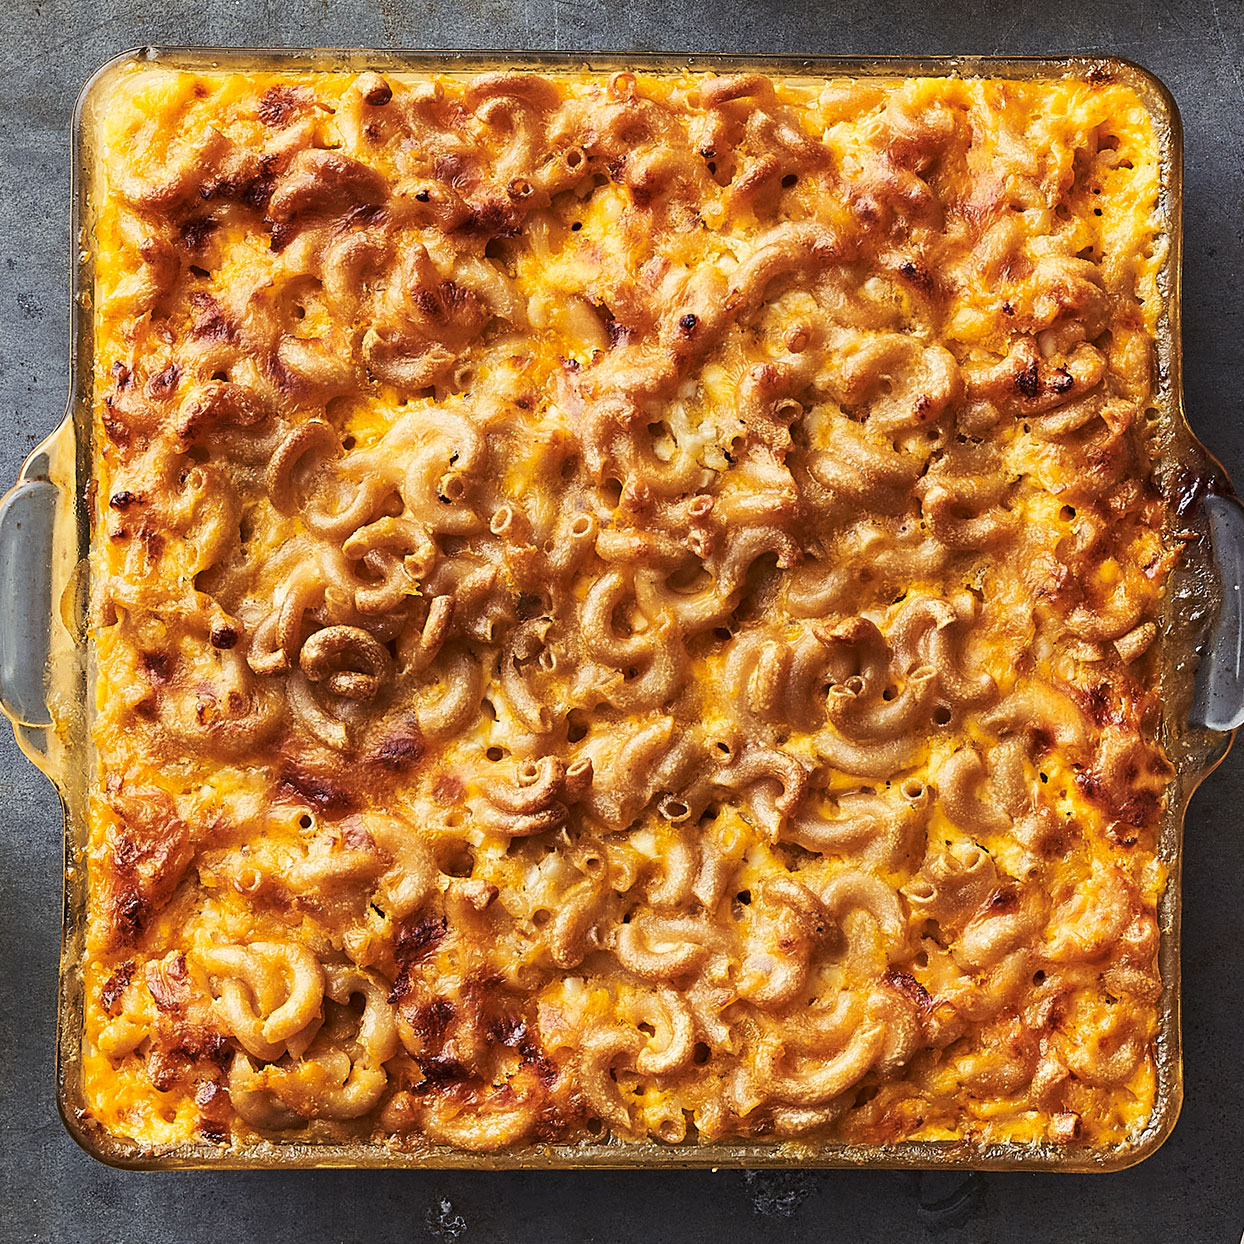 Mable's Mac 'n' Cheese Trusted Brands